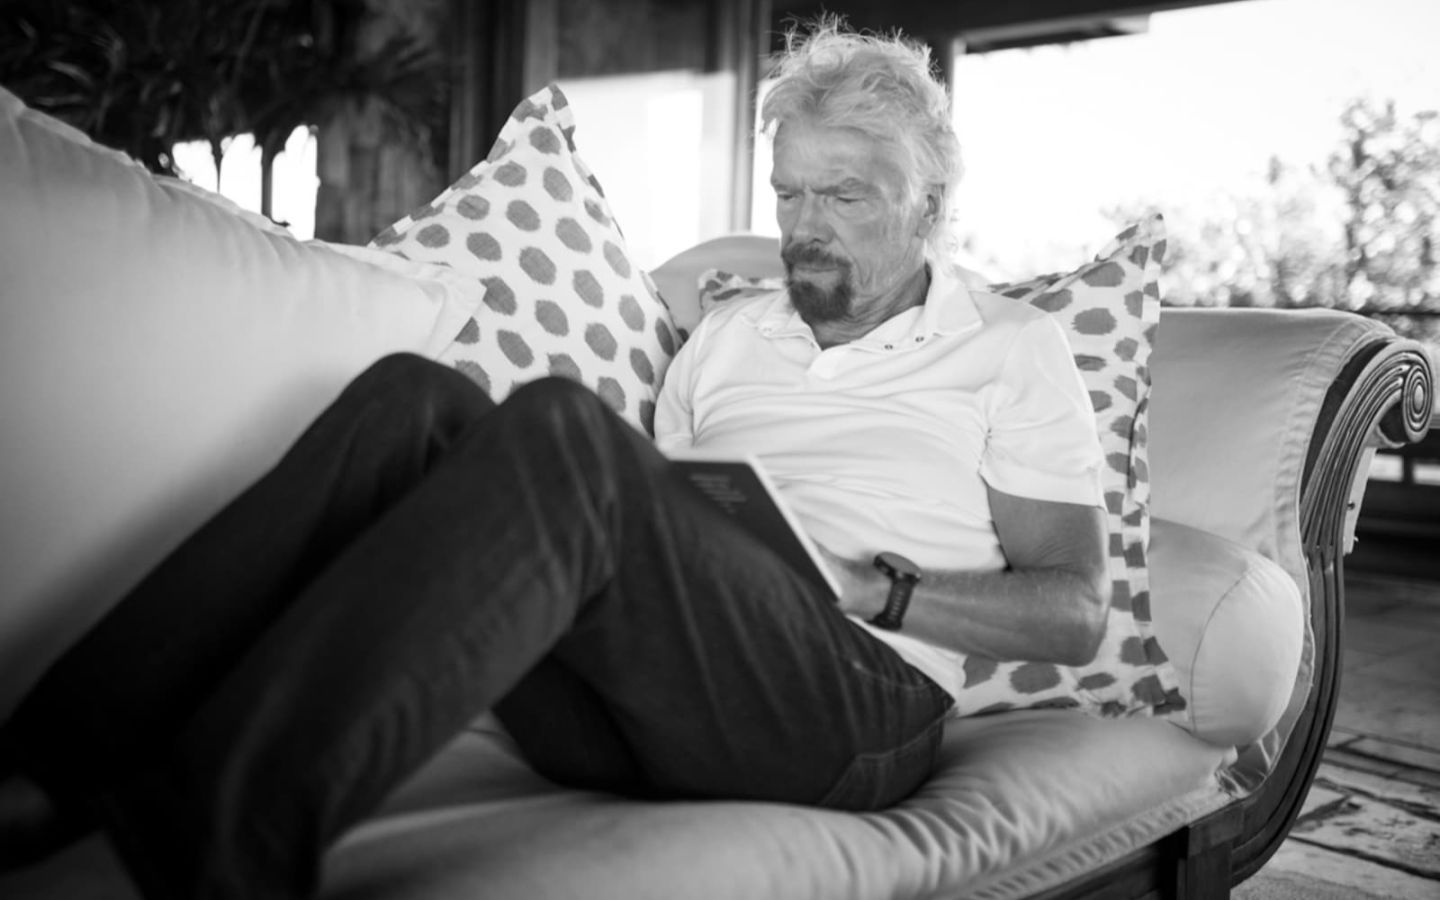 A black and white image of Richard Branson with his feet up on the sofa reading a book